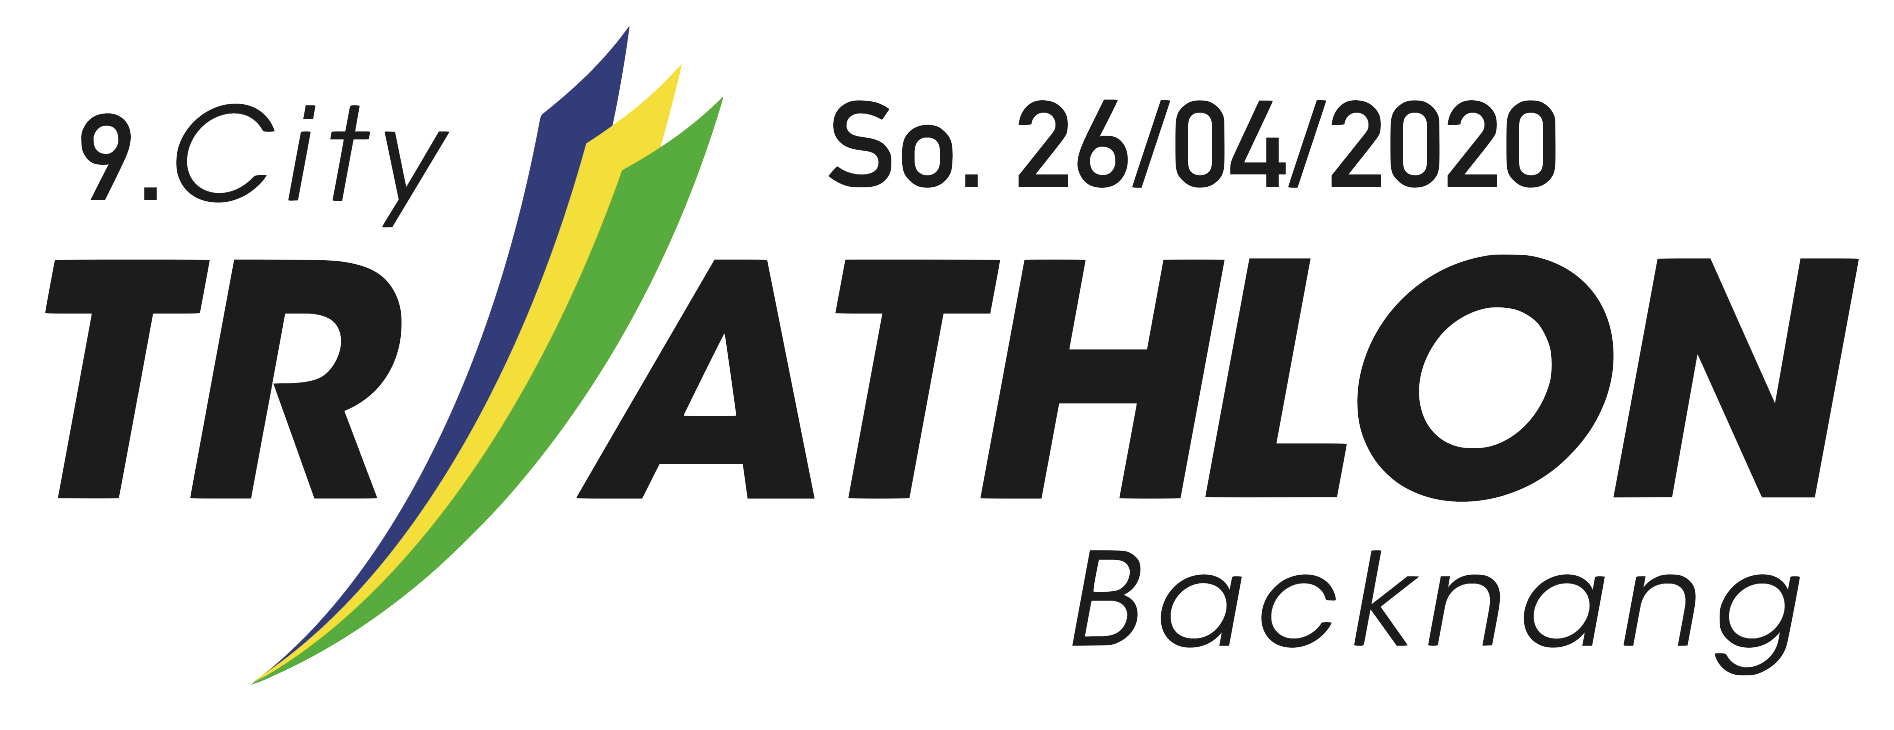 Citytriathlon Backnang 2020